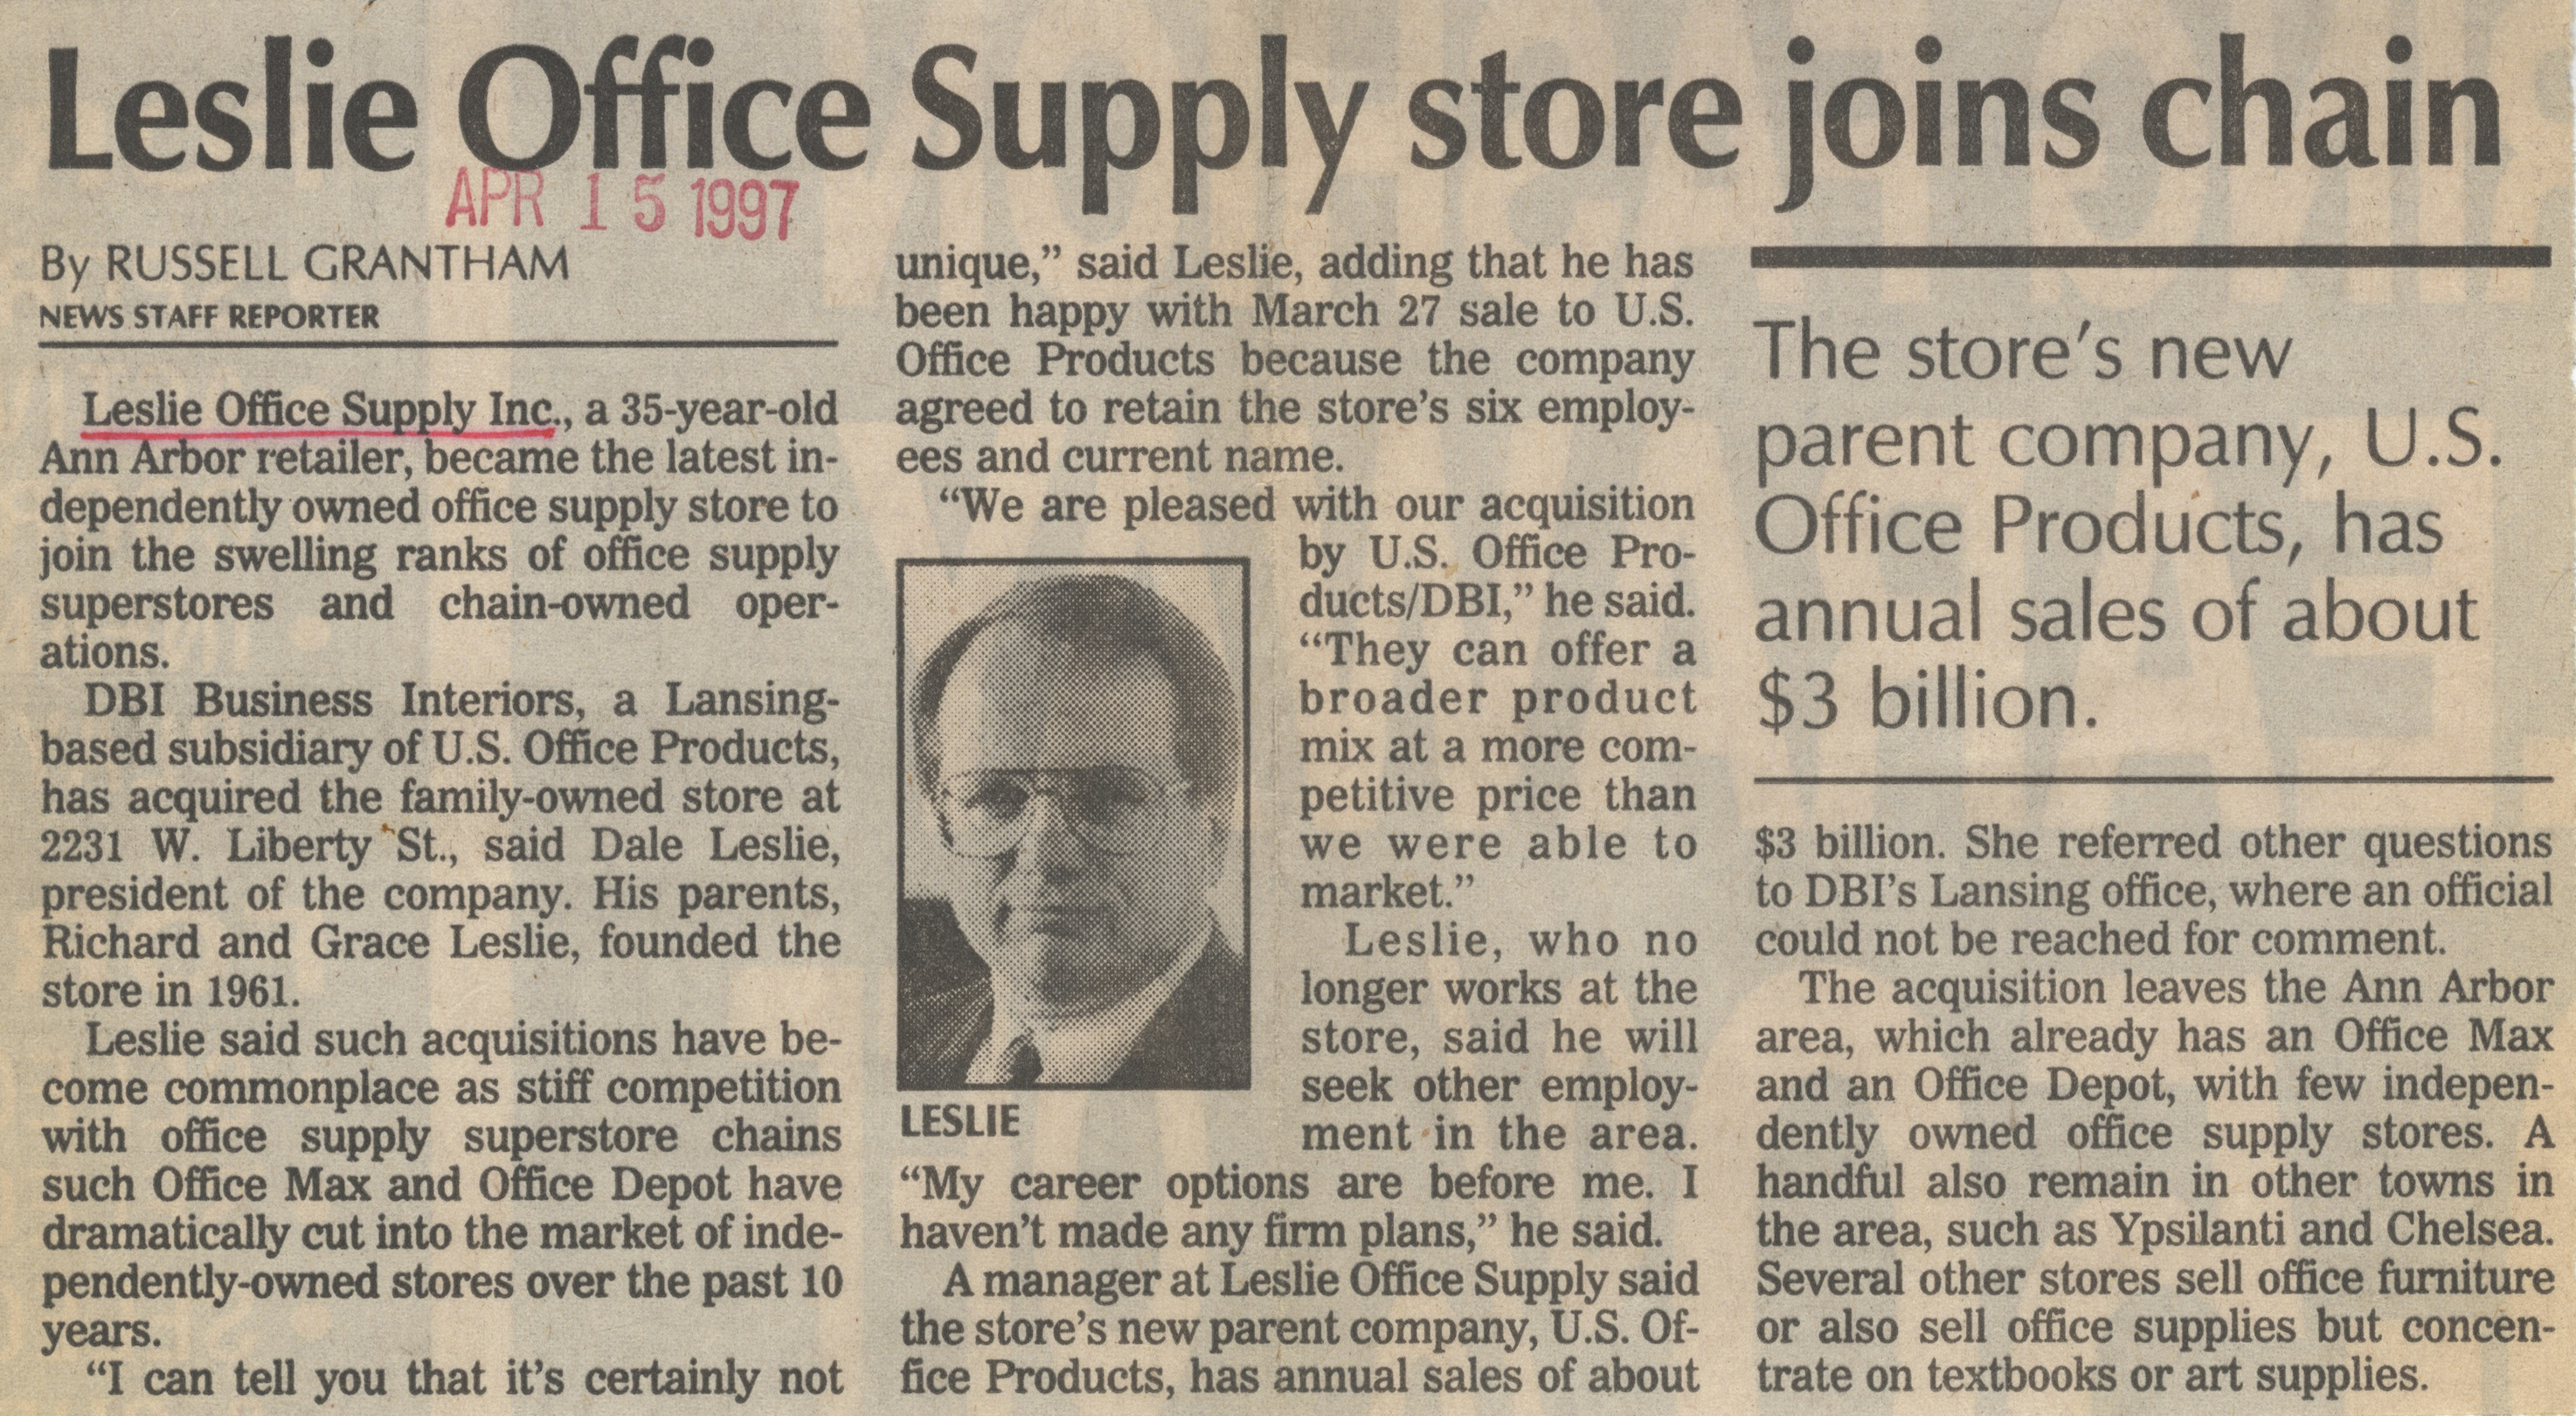 Leslie Office Supply Store Joins Chain image